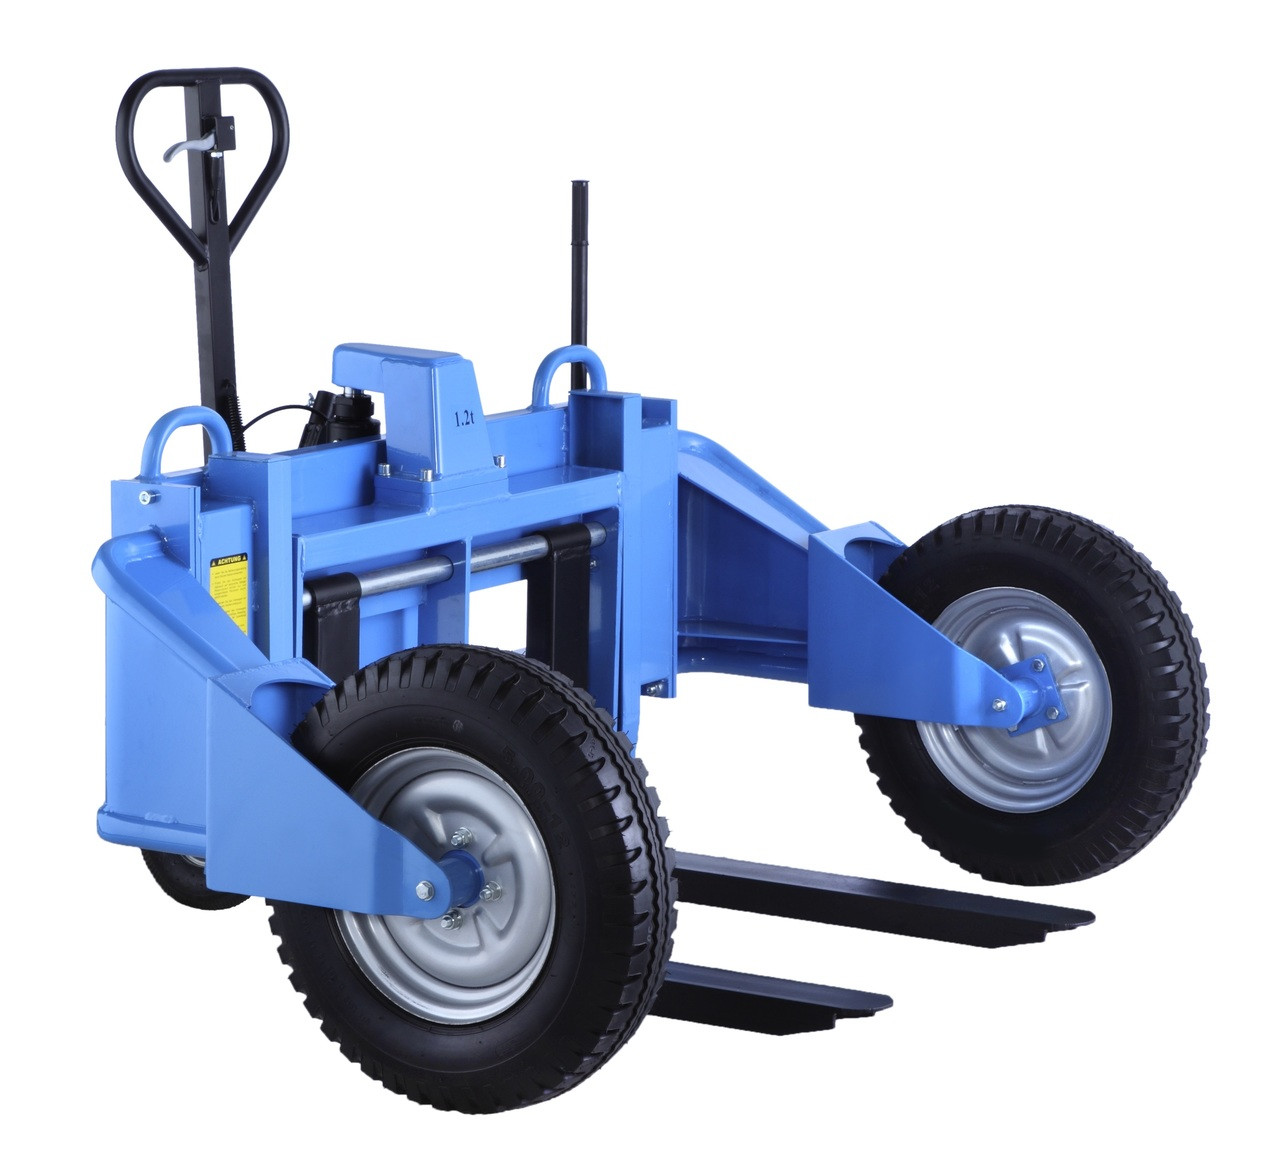 2 Ton Walk Behind Pallet Stacker Electric Forklift Price 1: All Terrain Pallet Truck, Off Road Pallet Truck, Rough